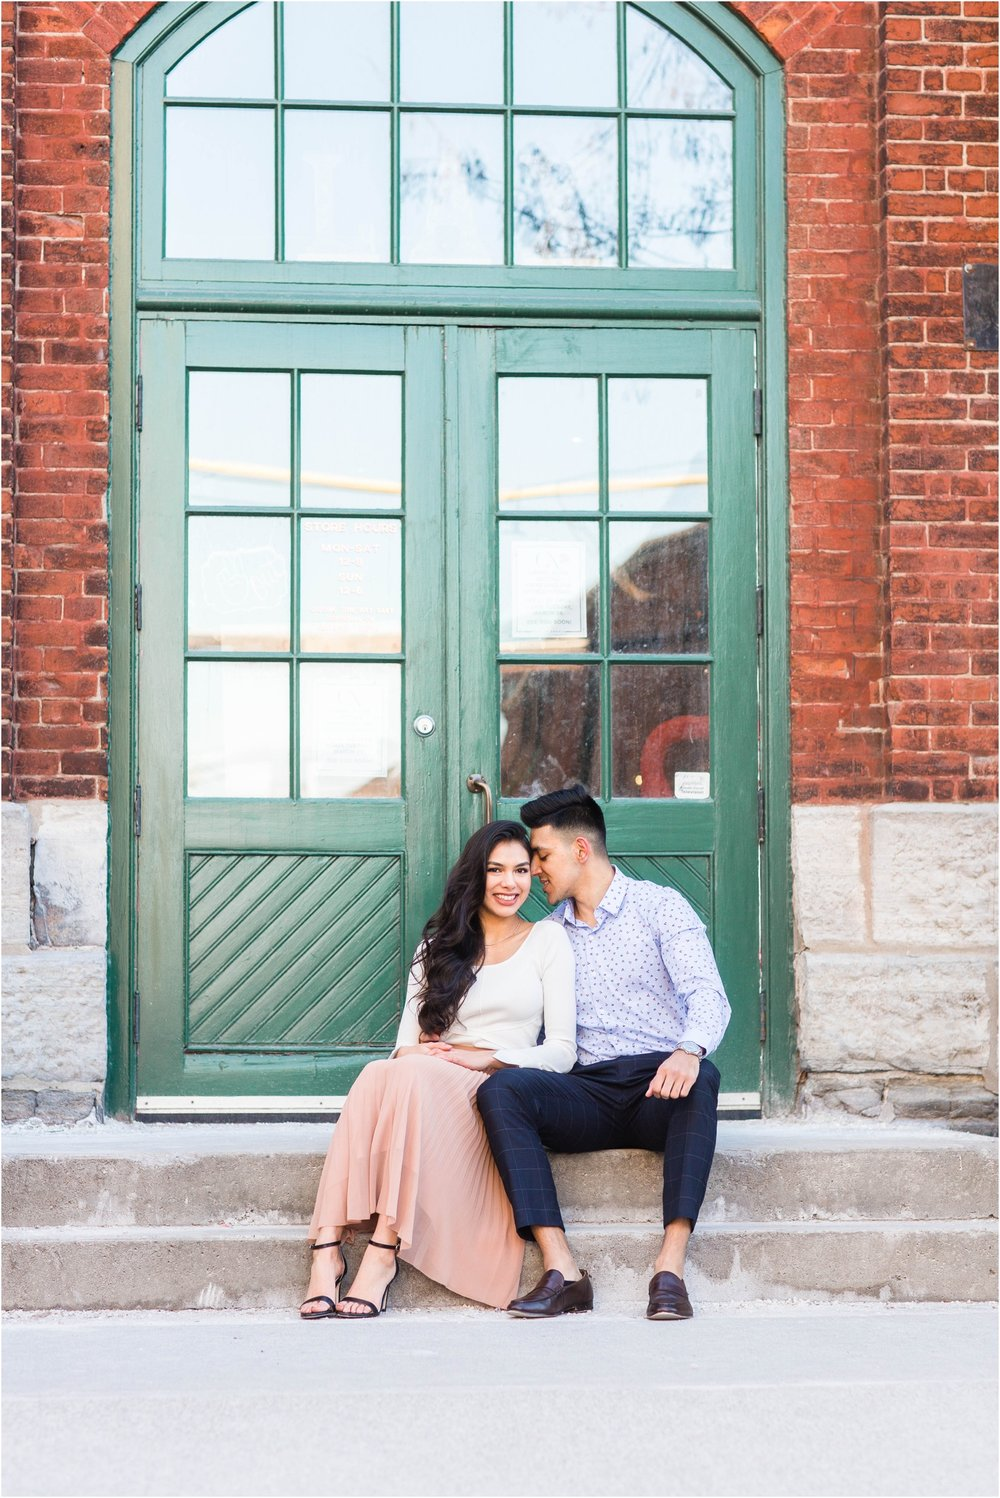 Distillery-District-Finanical-District-Downtown-Engagement-Session-Toronto-Mississauga-Brampton-Scarborough-GTA-Pakistani-Indian-Wedding-Engagement-Photographer-Photography_0015.jpg